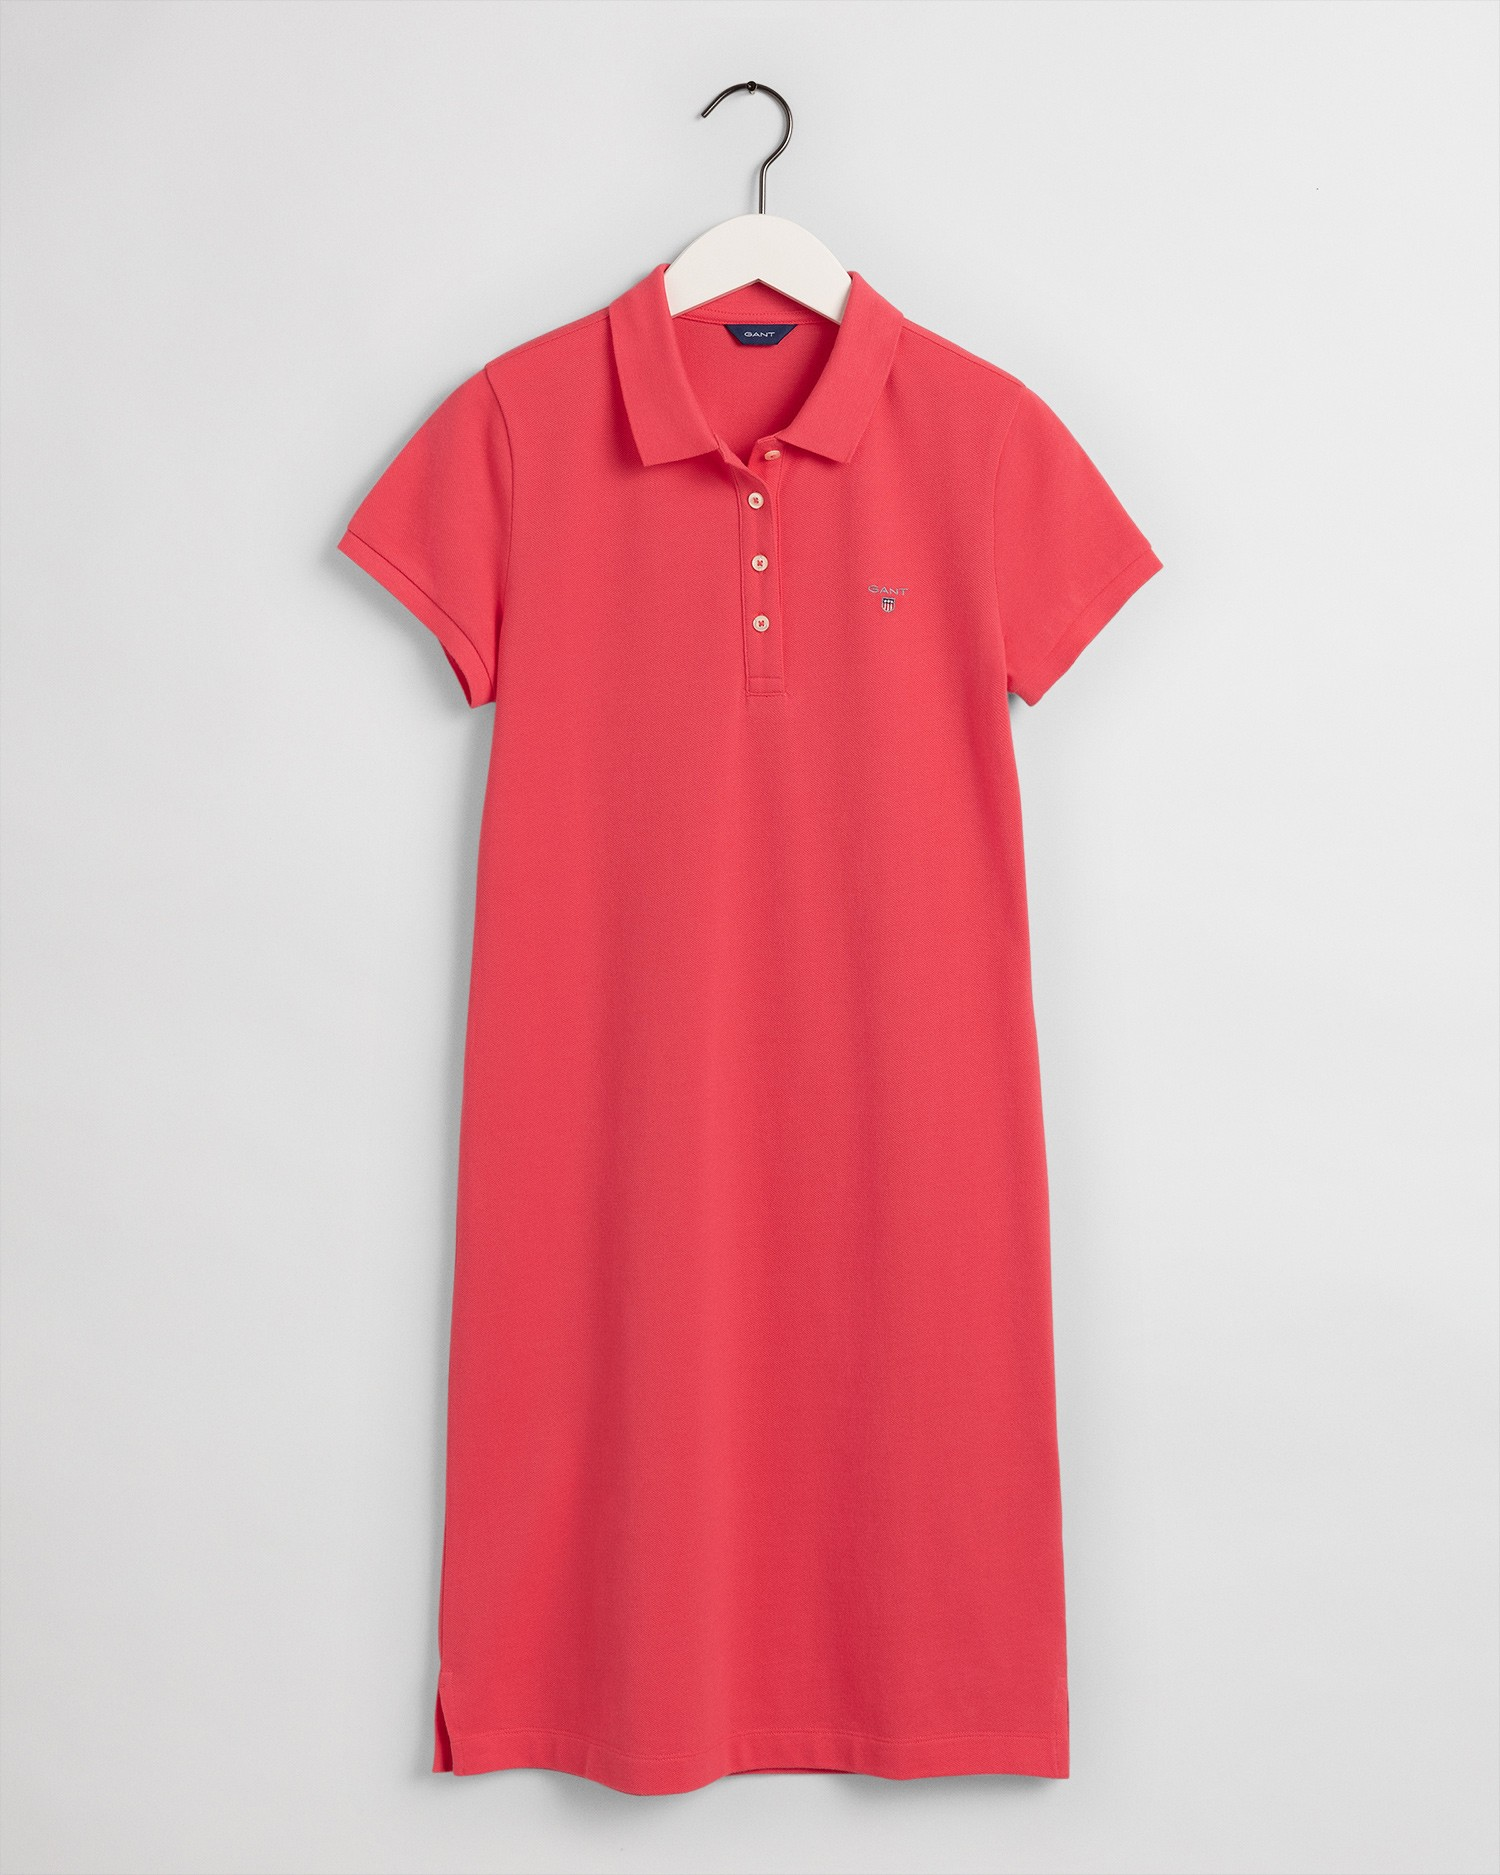 GANT Women's Original Pique Short Sleeve Dress  - 402300